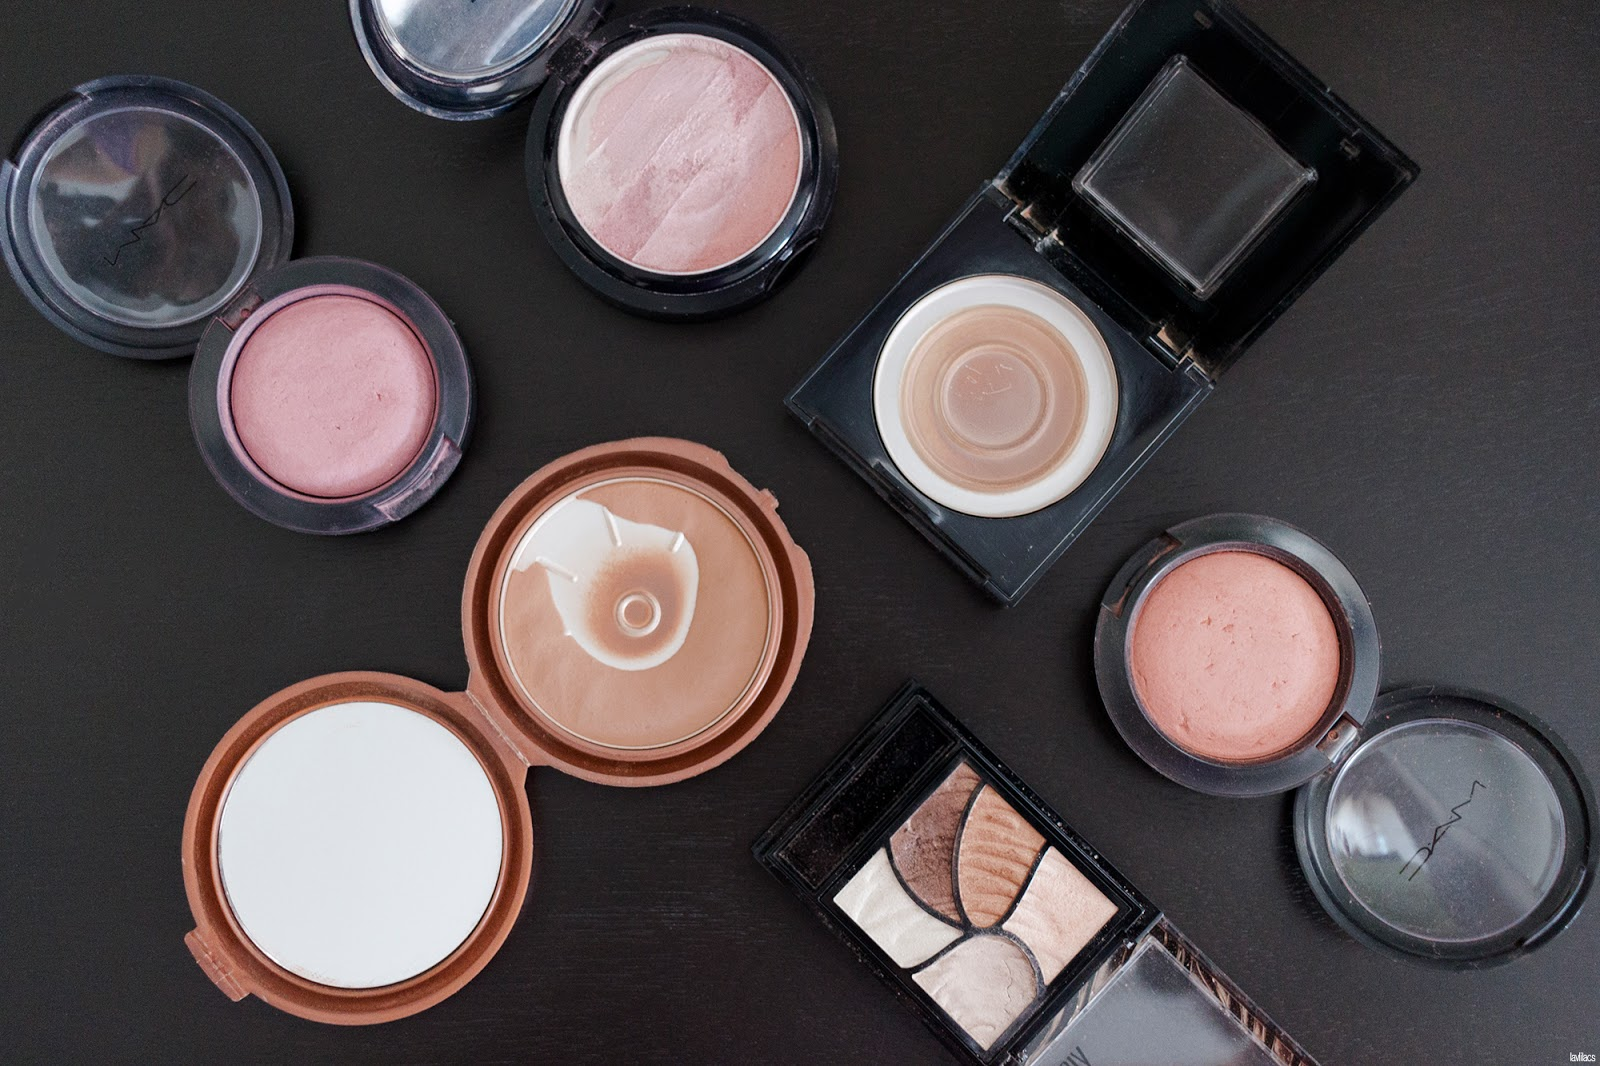 Project Make A Dent 2016 Powder makeup products - Half year results